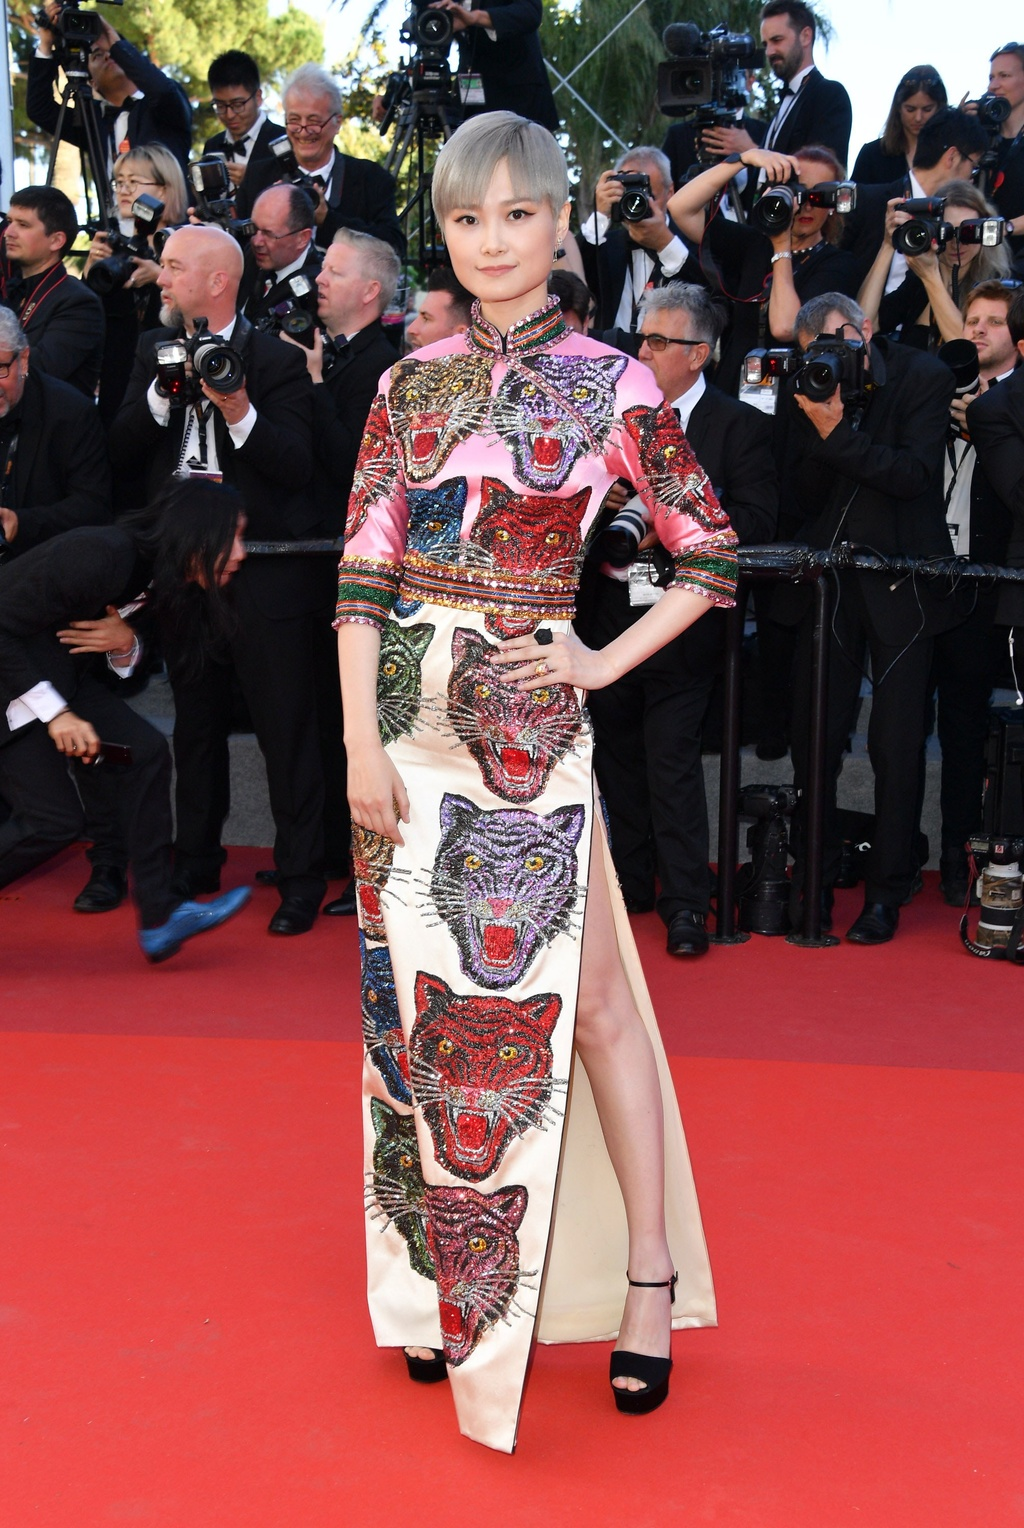 Ly Vu Xuan bat ngo tro thanh hien tuong tham do Cannes hinh anh 2